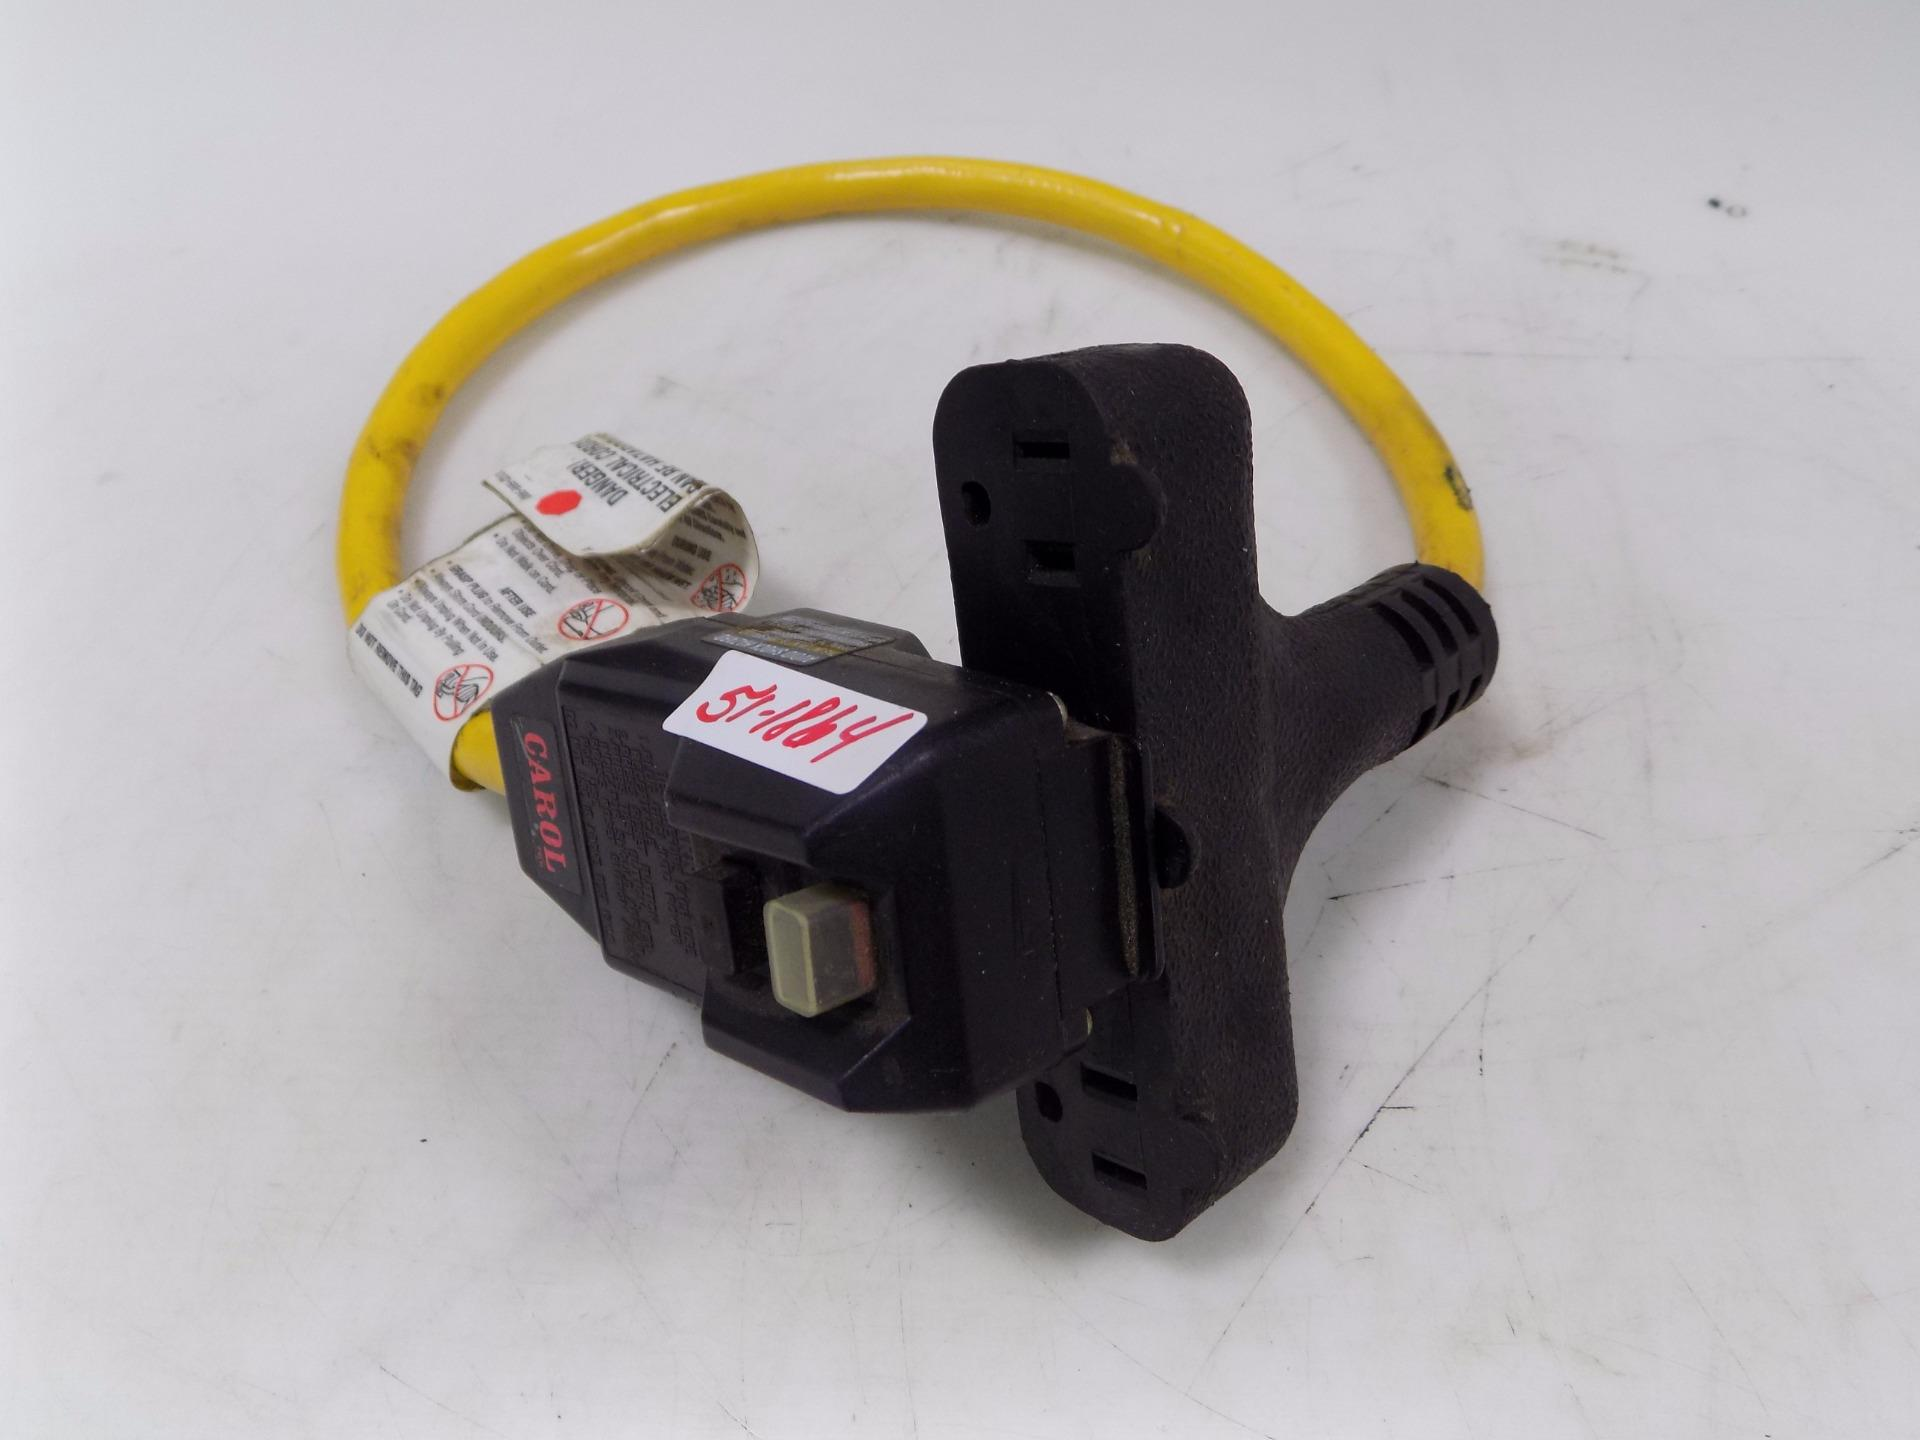 Carol Cable Ground Fault Circuit Interrupter 50 0110 00201 Ebay Corole Fuse Box Toyota Parts